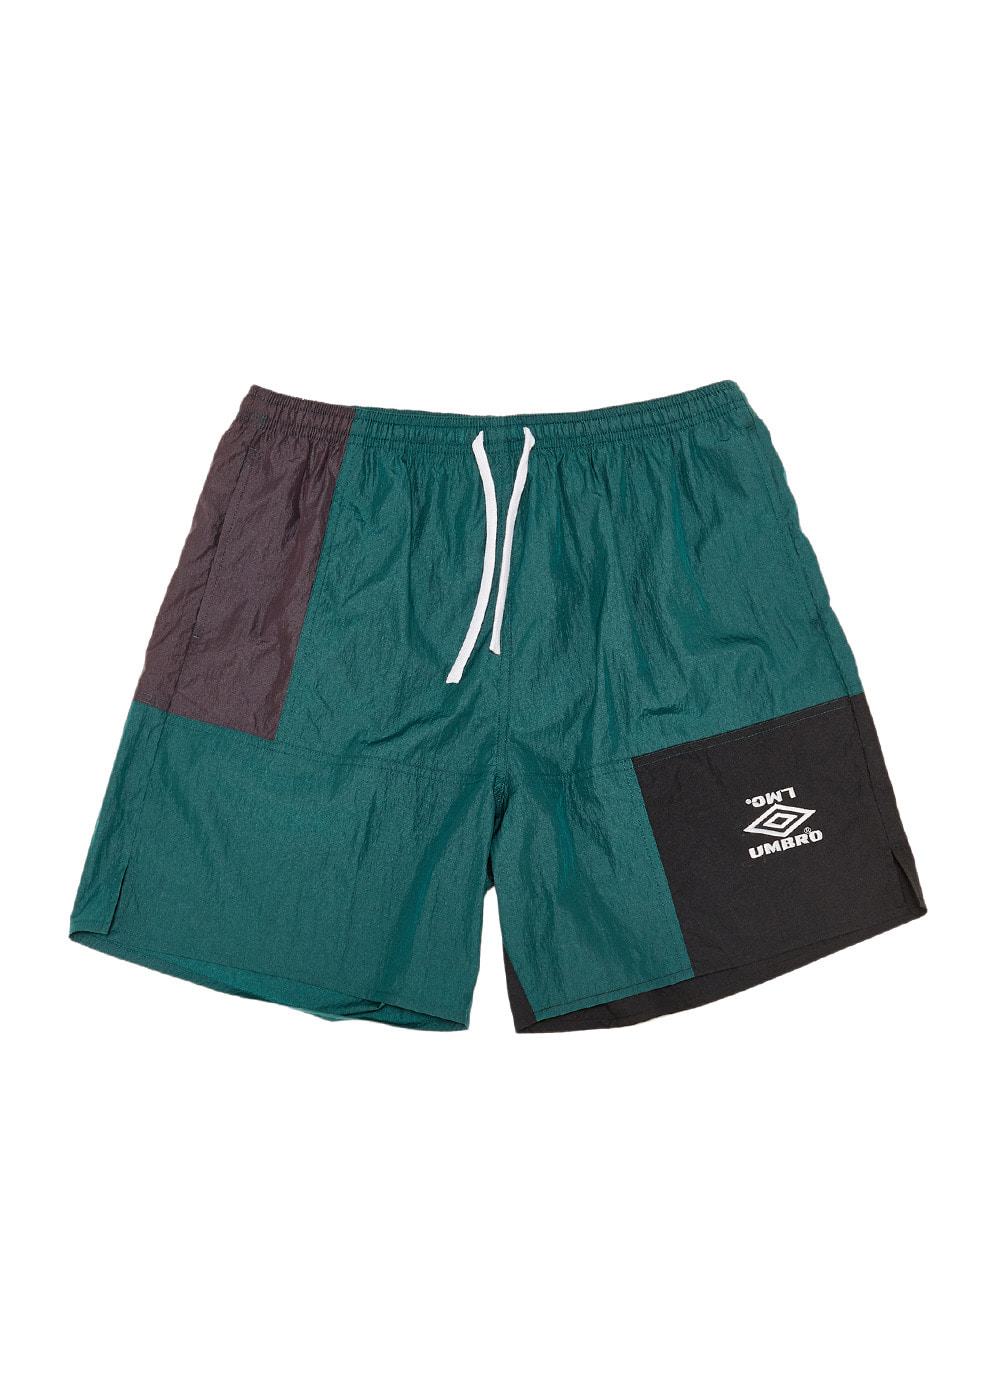 UMB X LMC RETRO SHORTS green